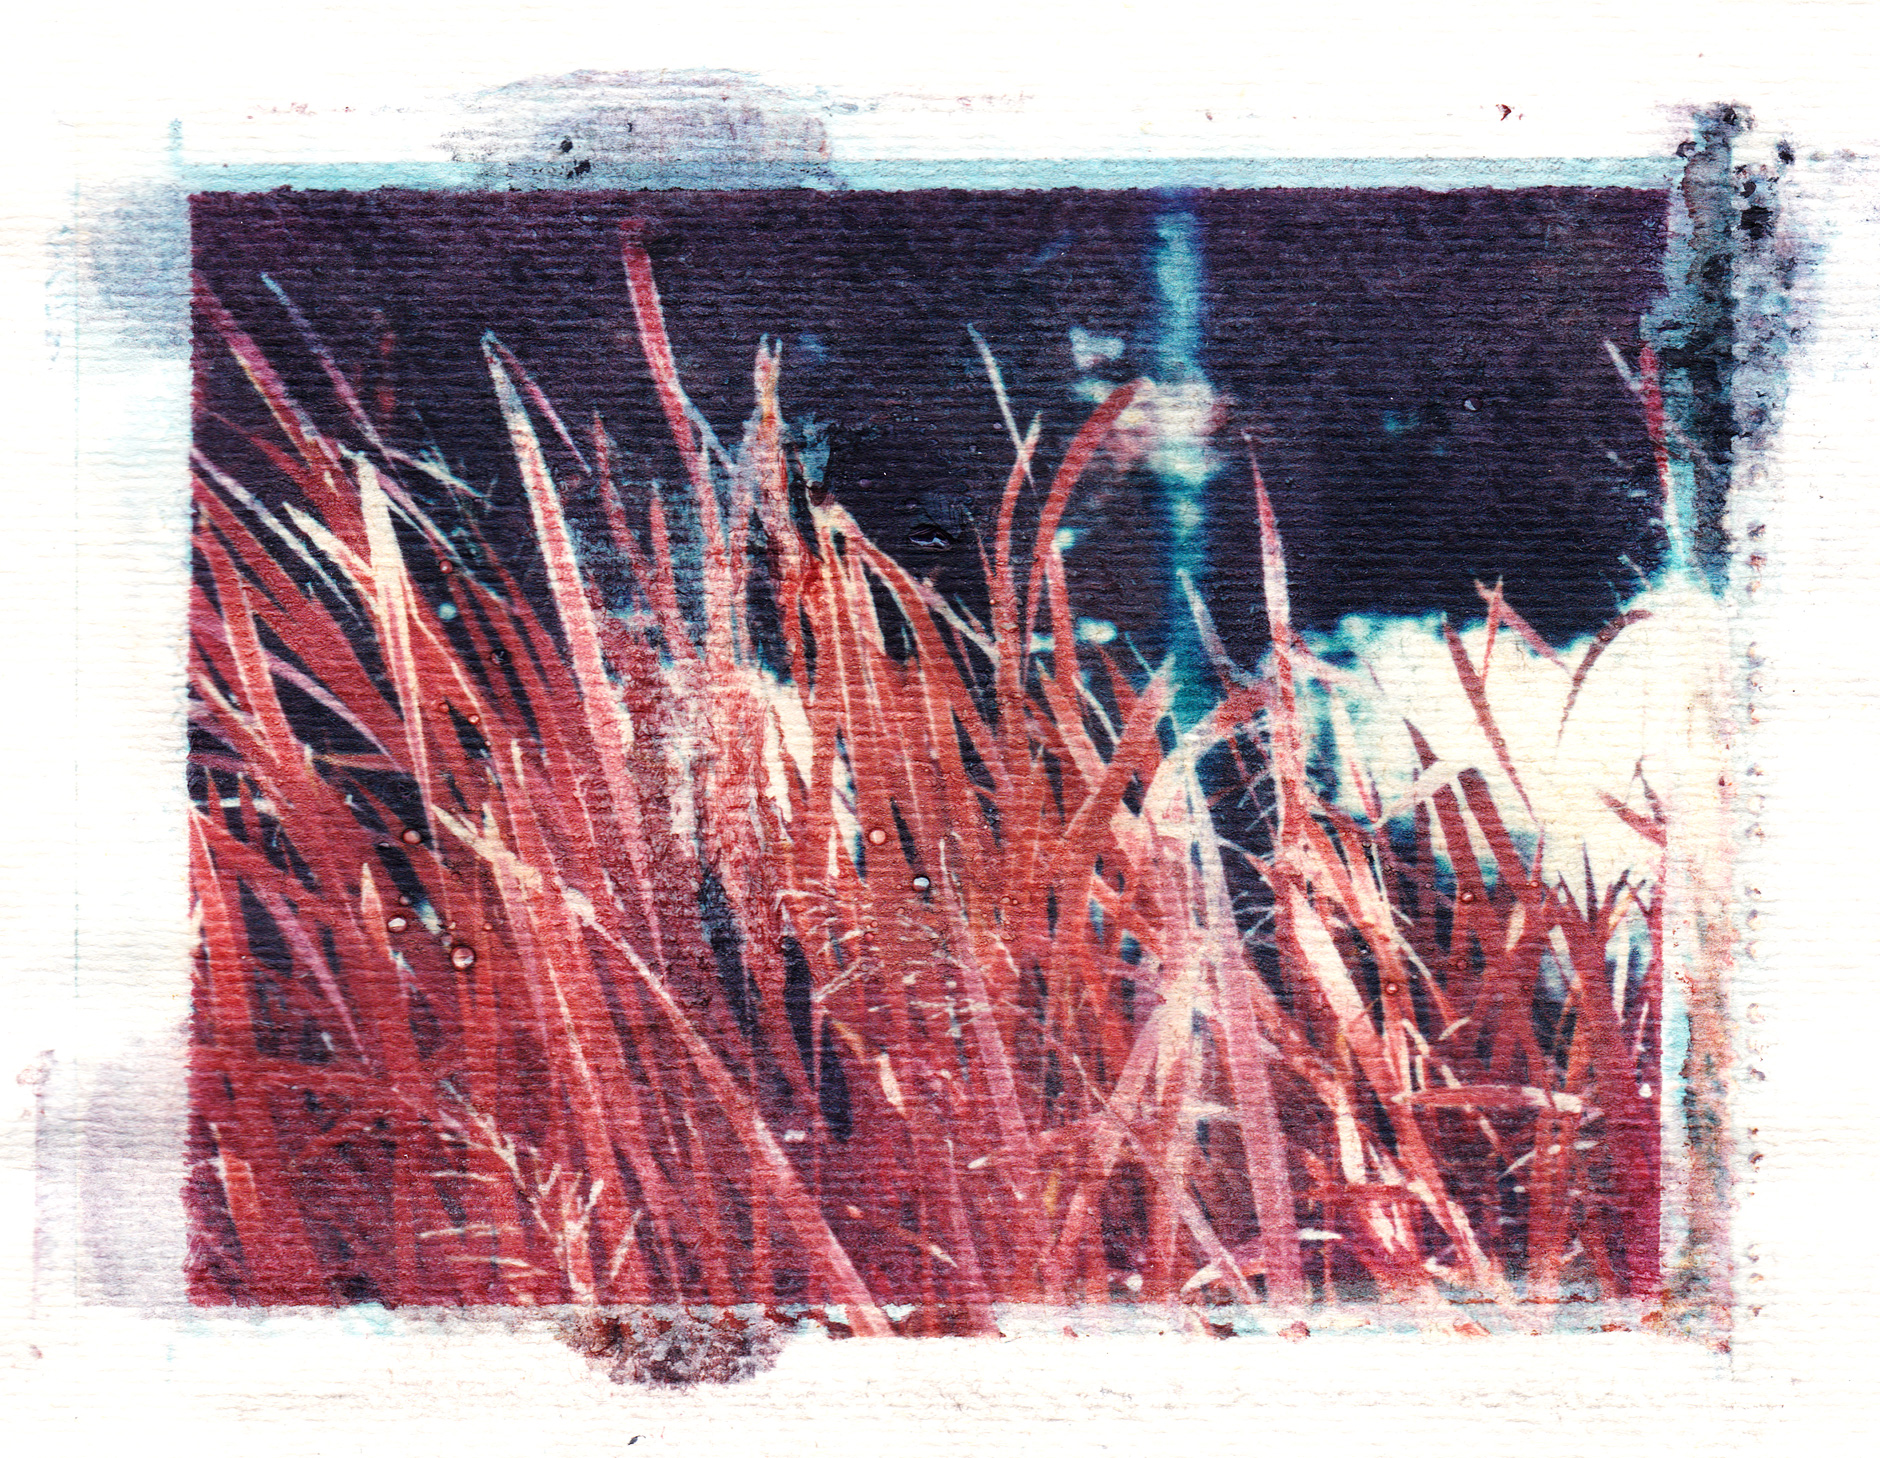 Polaroid transfer on paper infrared image of grass